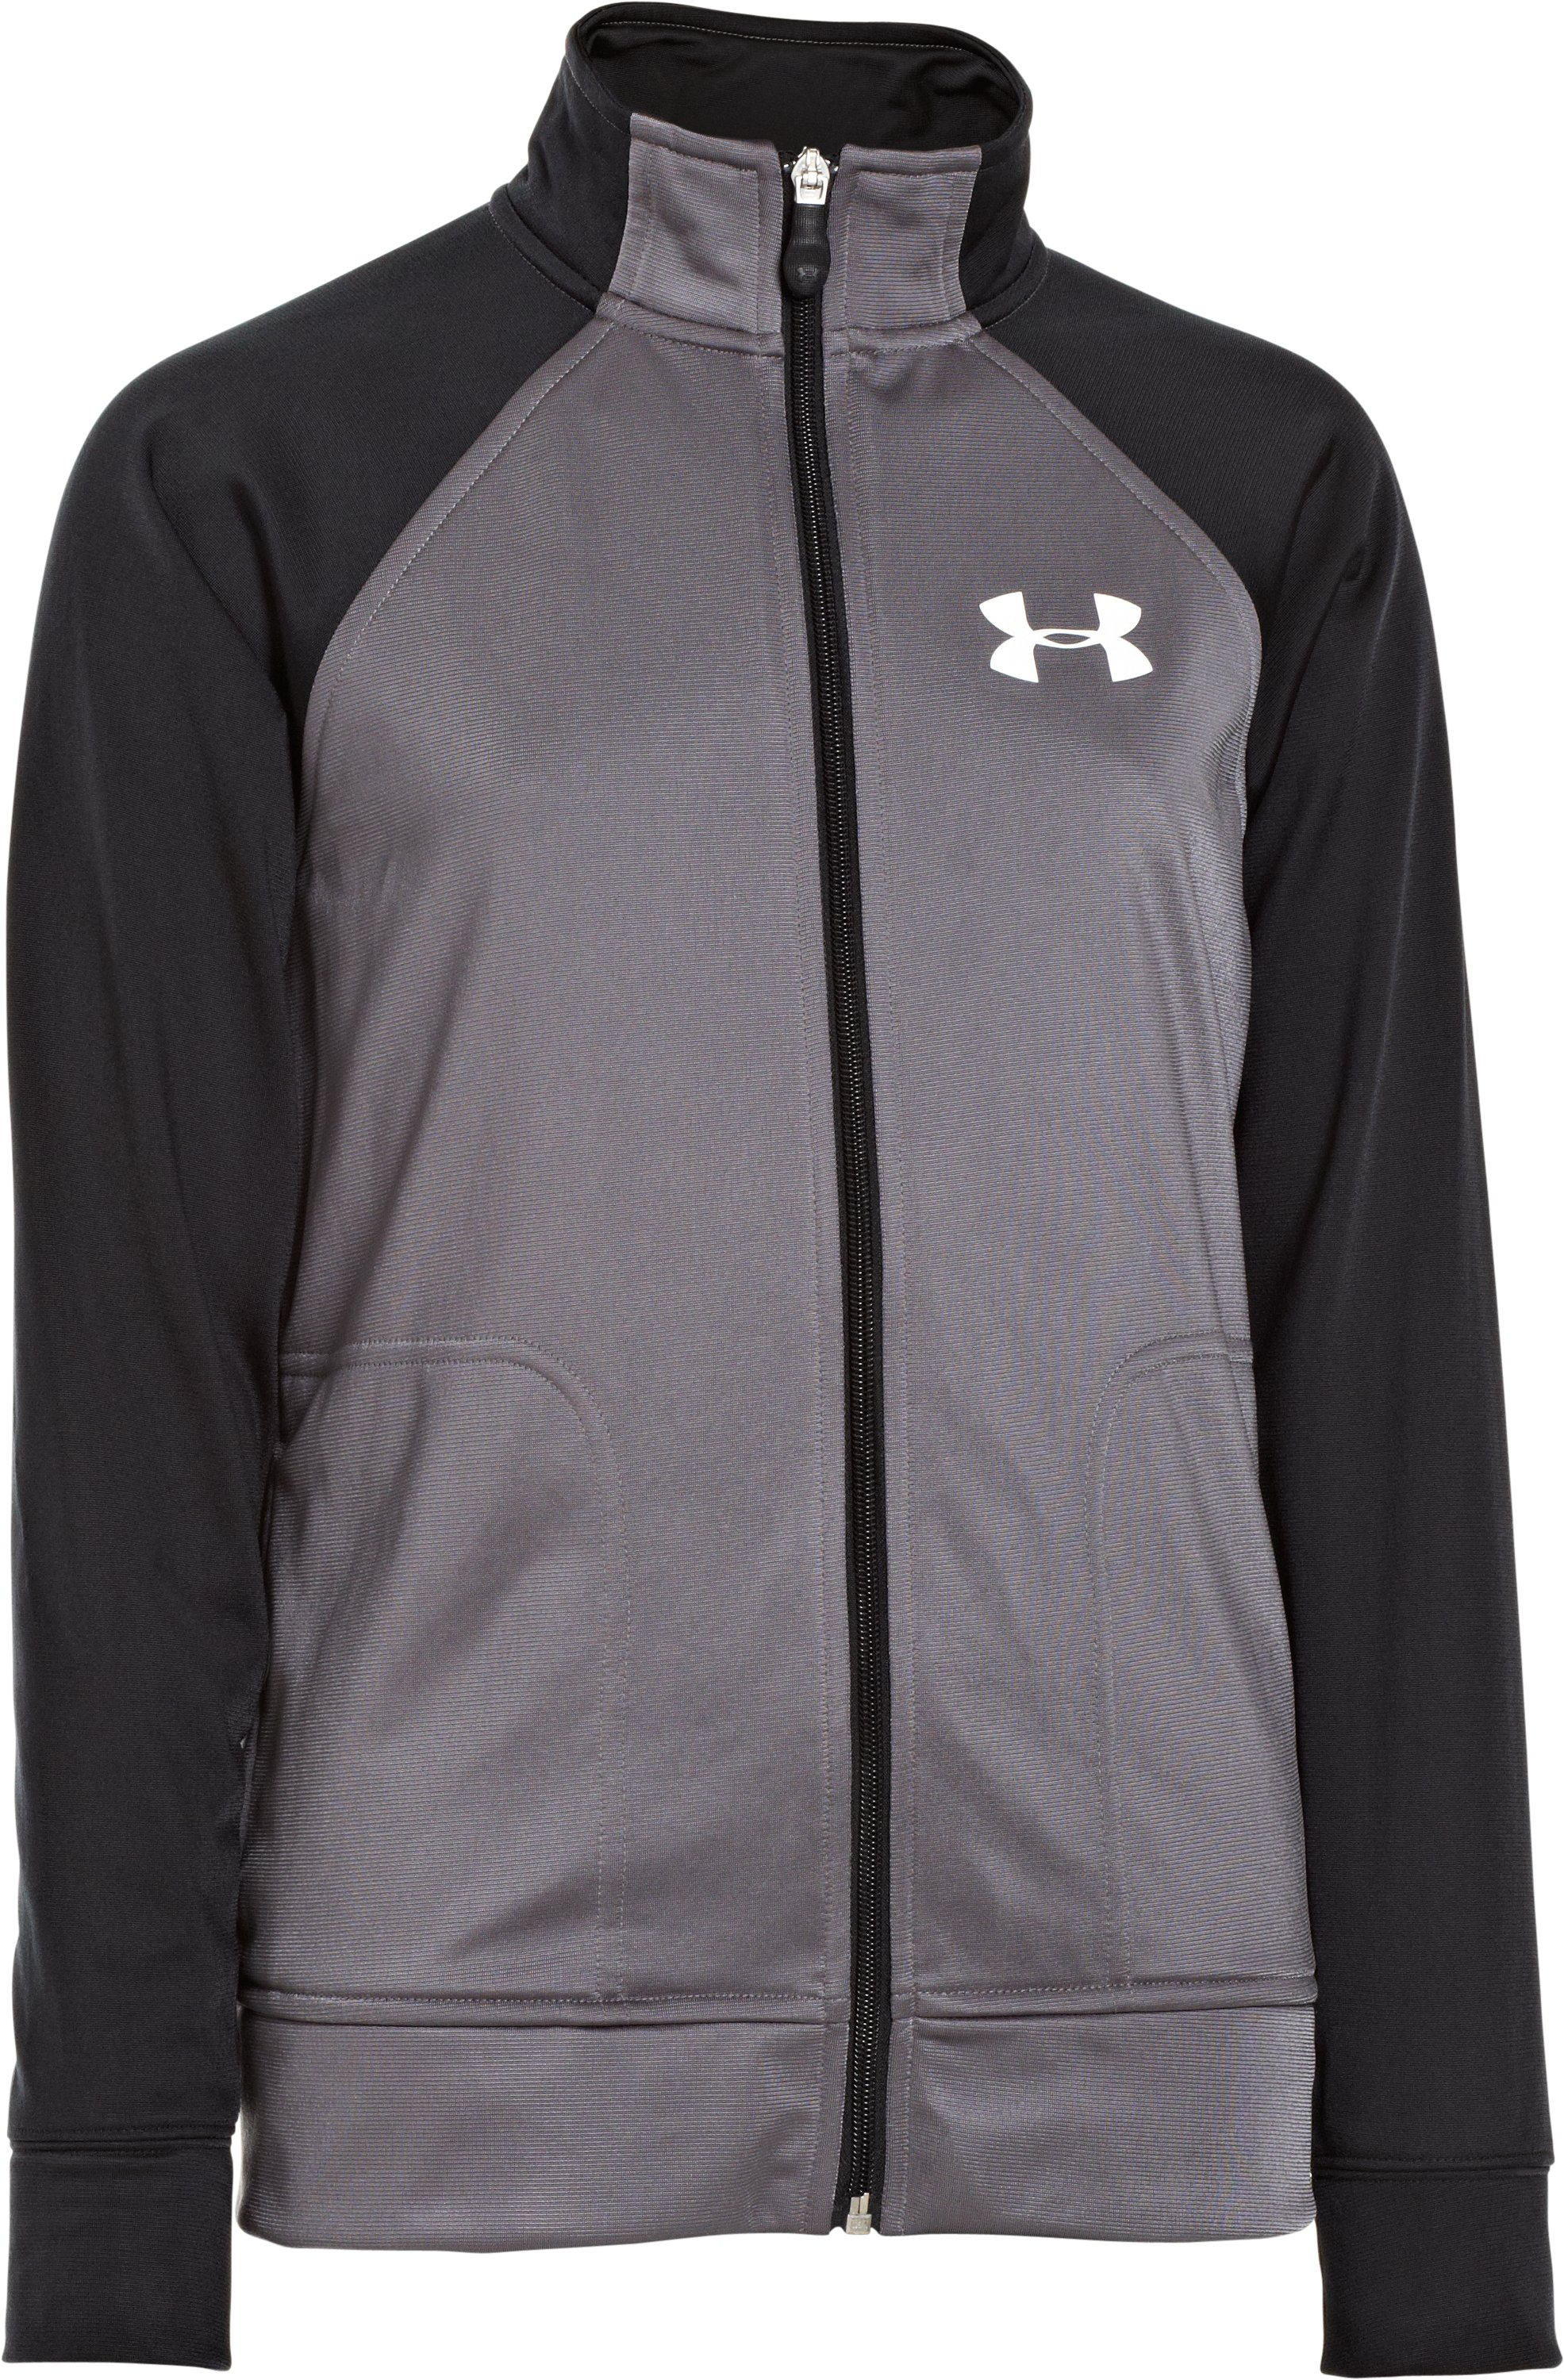 Boys' UA Brawler Knit Warm-Up Jacket 2.0, Graphite, zoomed image